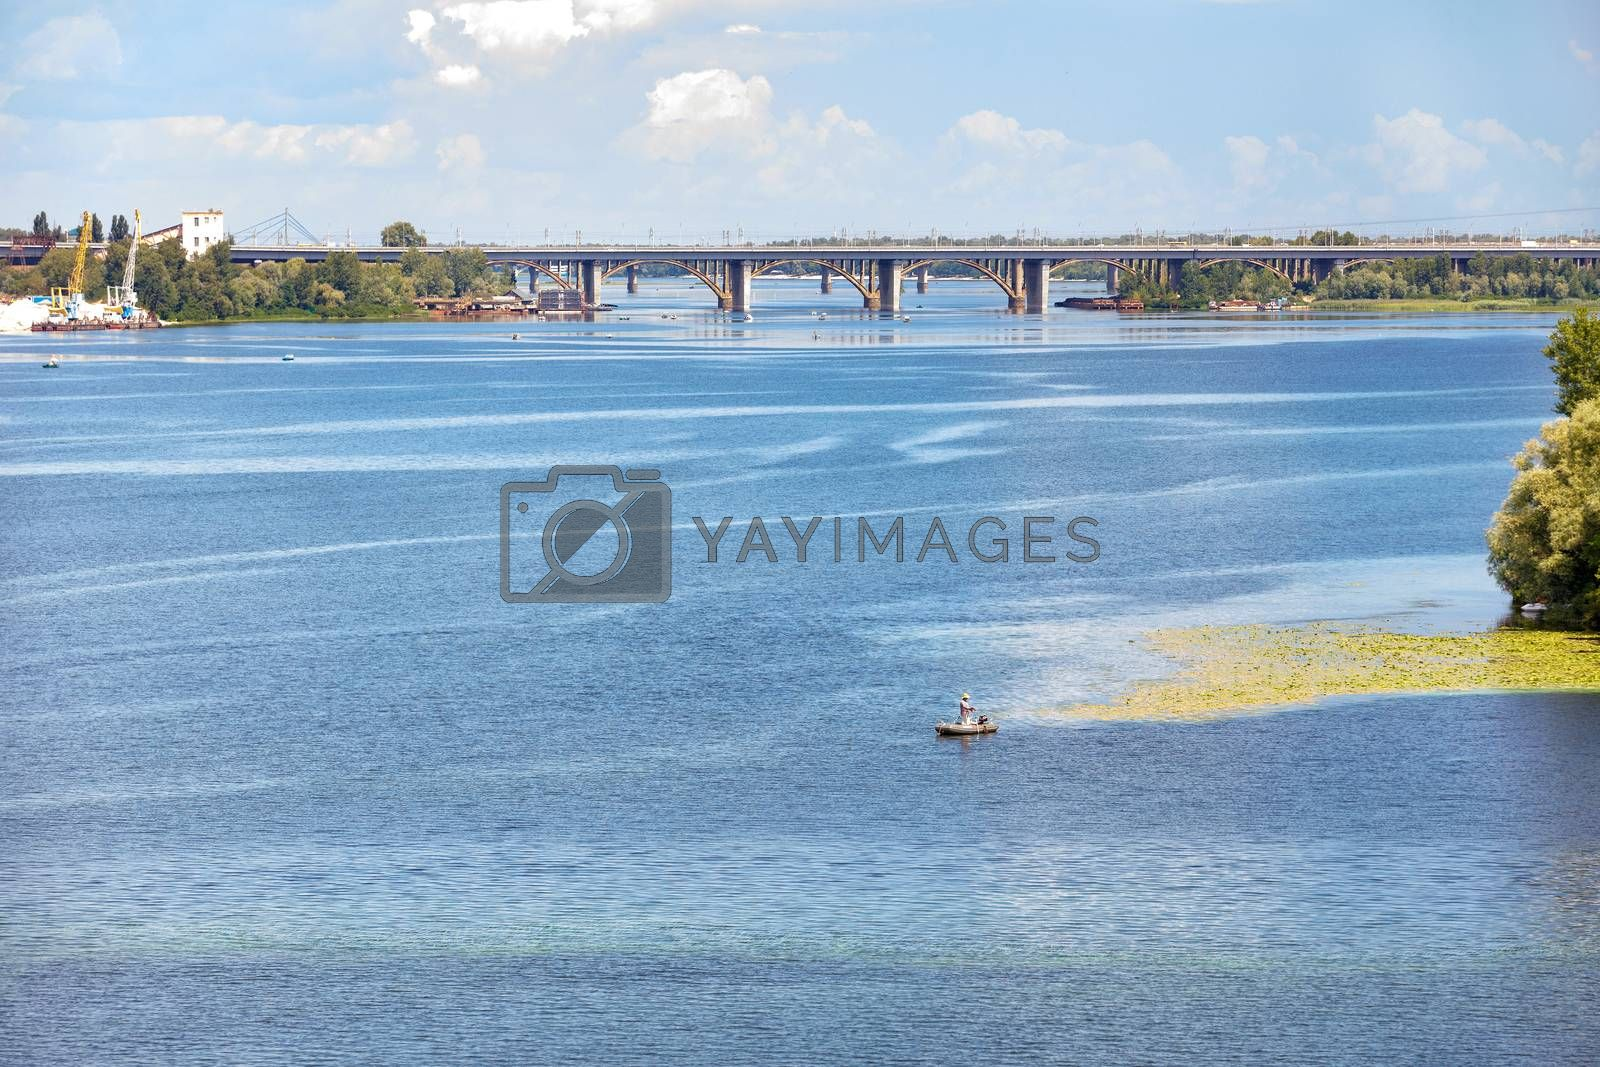 The water surface of the wide Dnipro River in the foreground, a lone fisherman on an inflatable boat in the middle, road bridges across the river on the horizon, copy space.